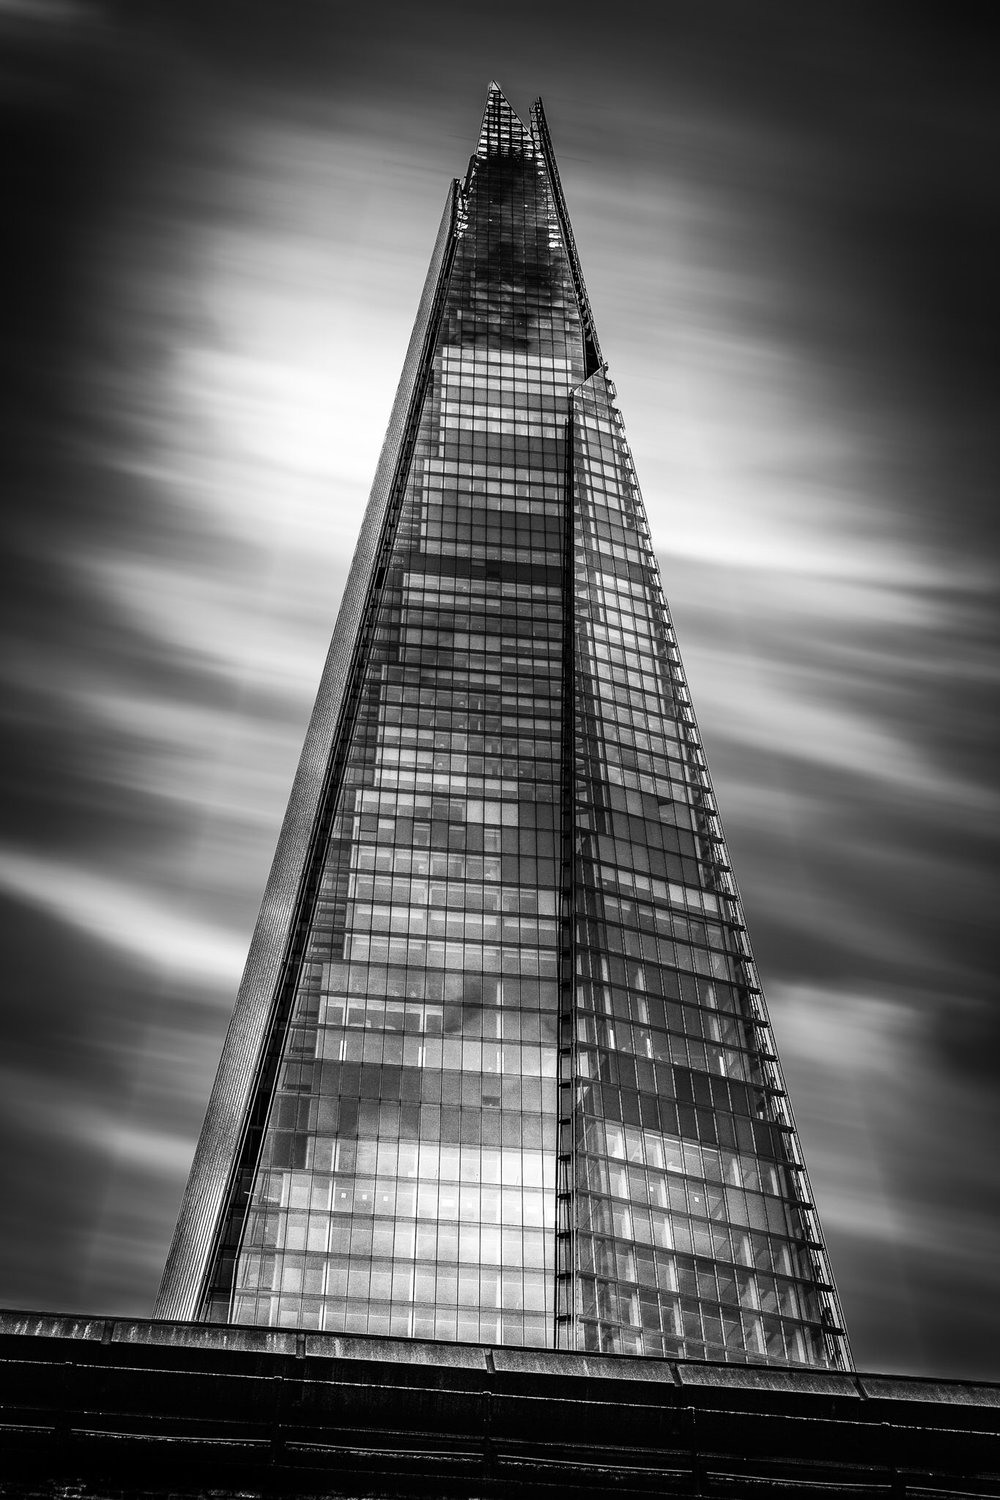 The Shard. London. England.